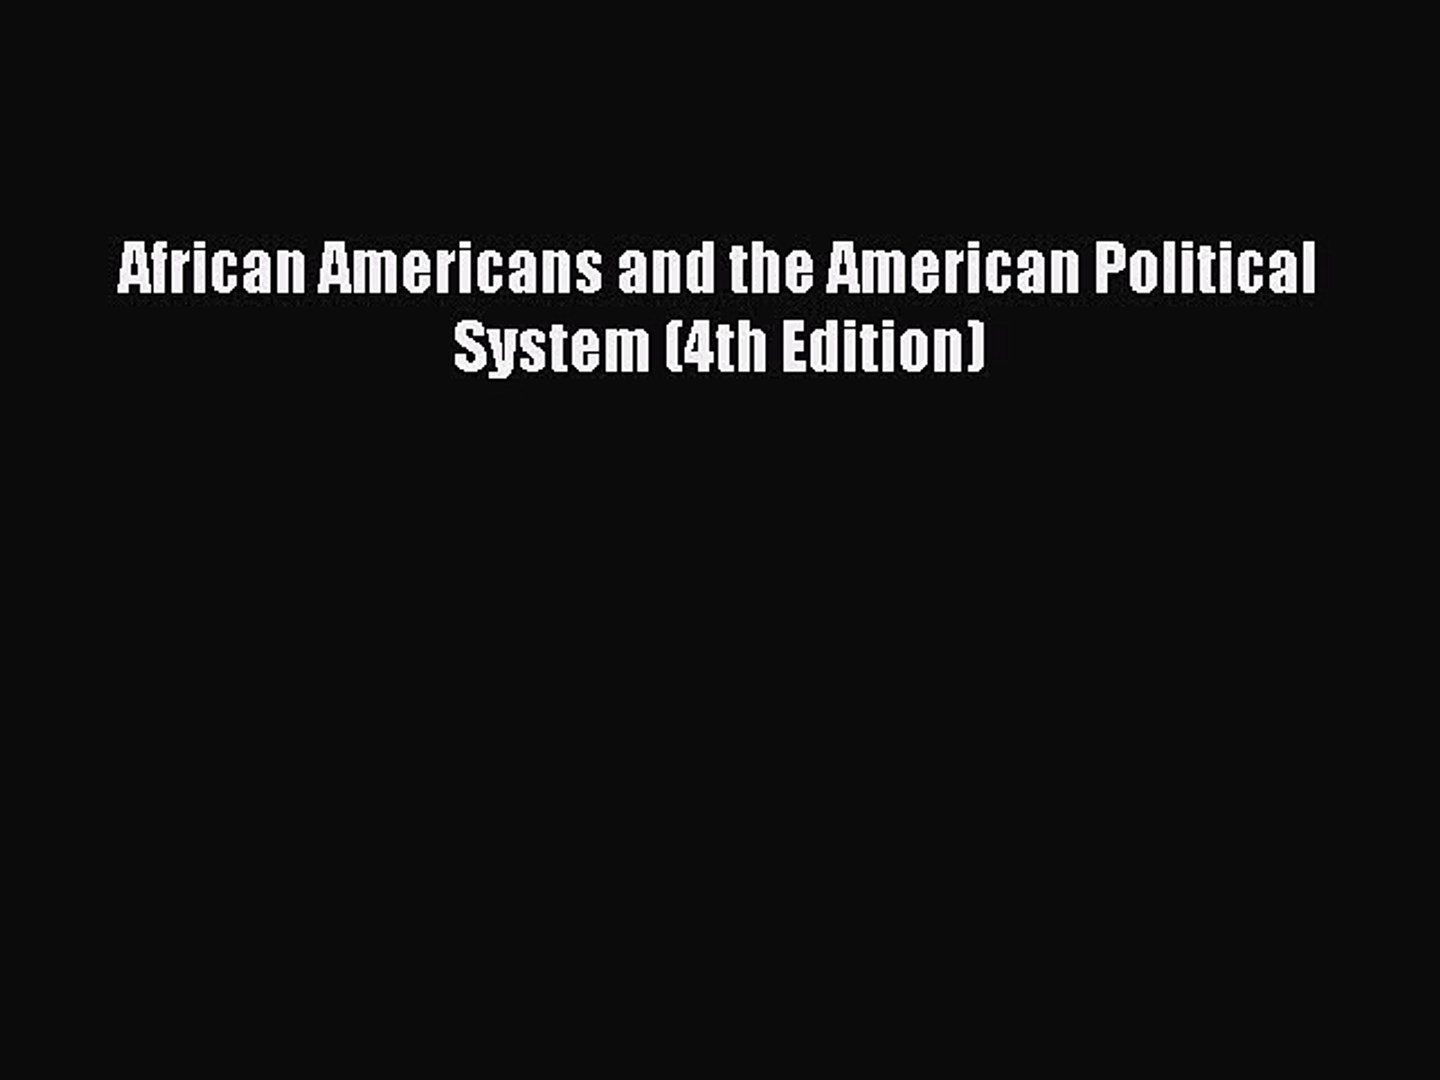 Read Book African Americans and the American Political System (4th Edition) E-Book Free